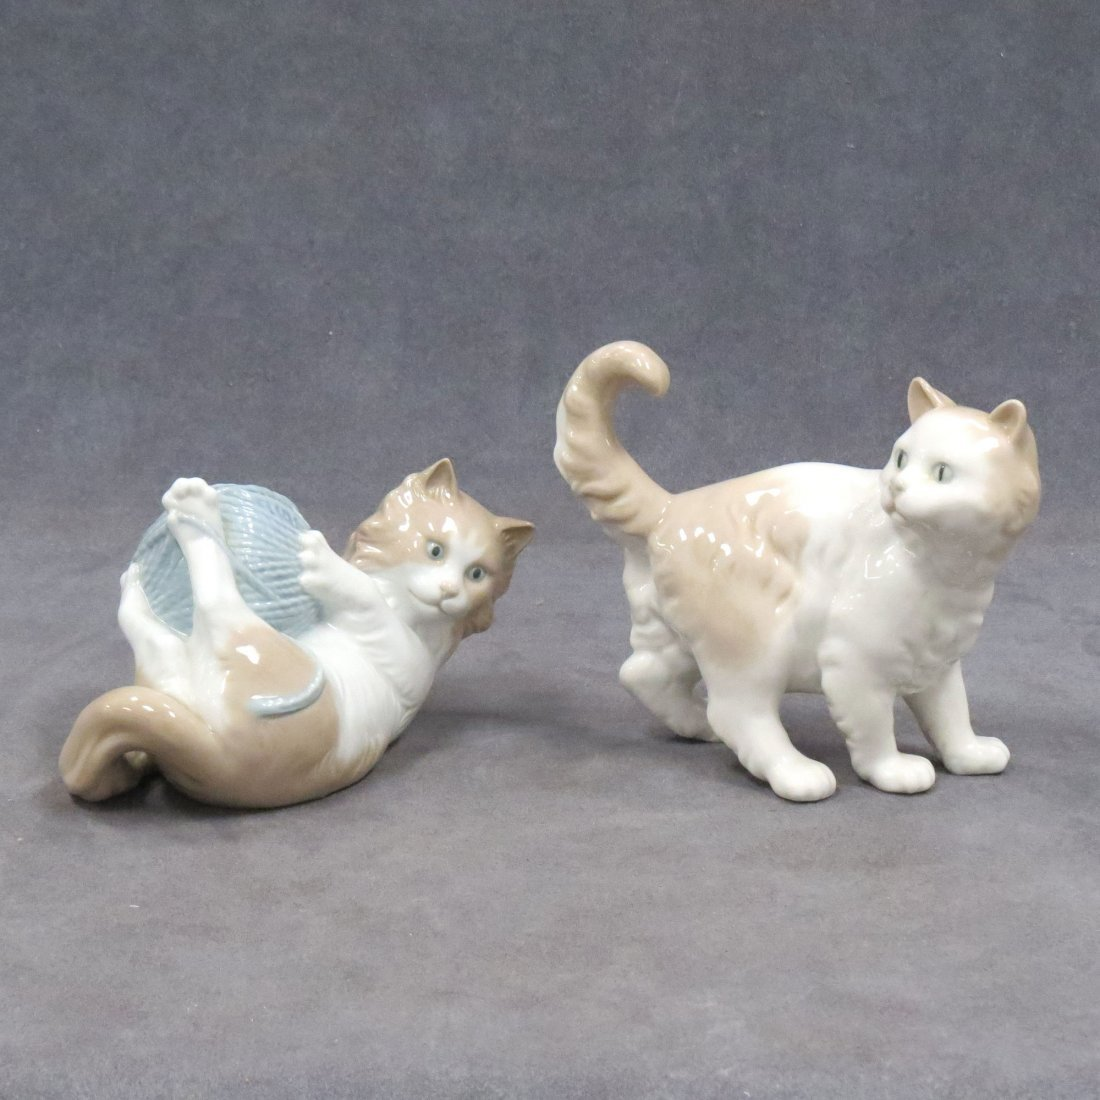 LOT (2) NAO BY LLADRO PORCELAIN FIGURES OF KITTENS